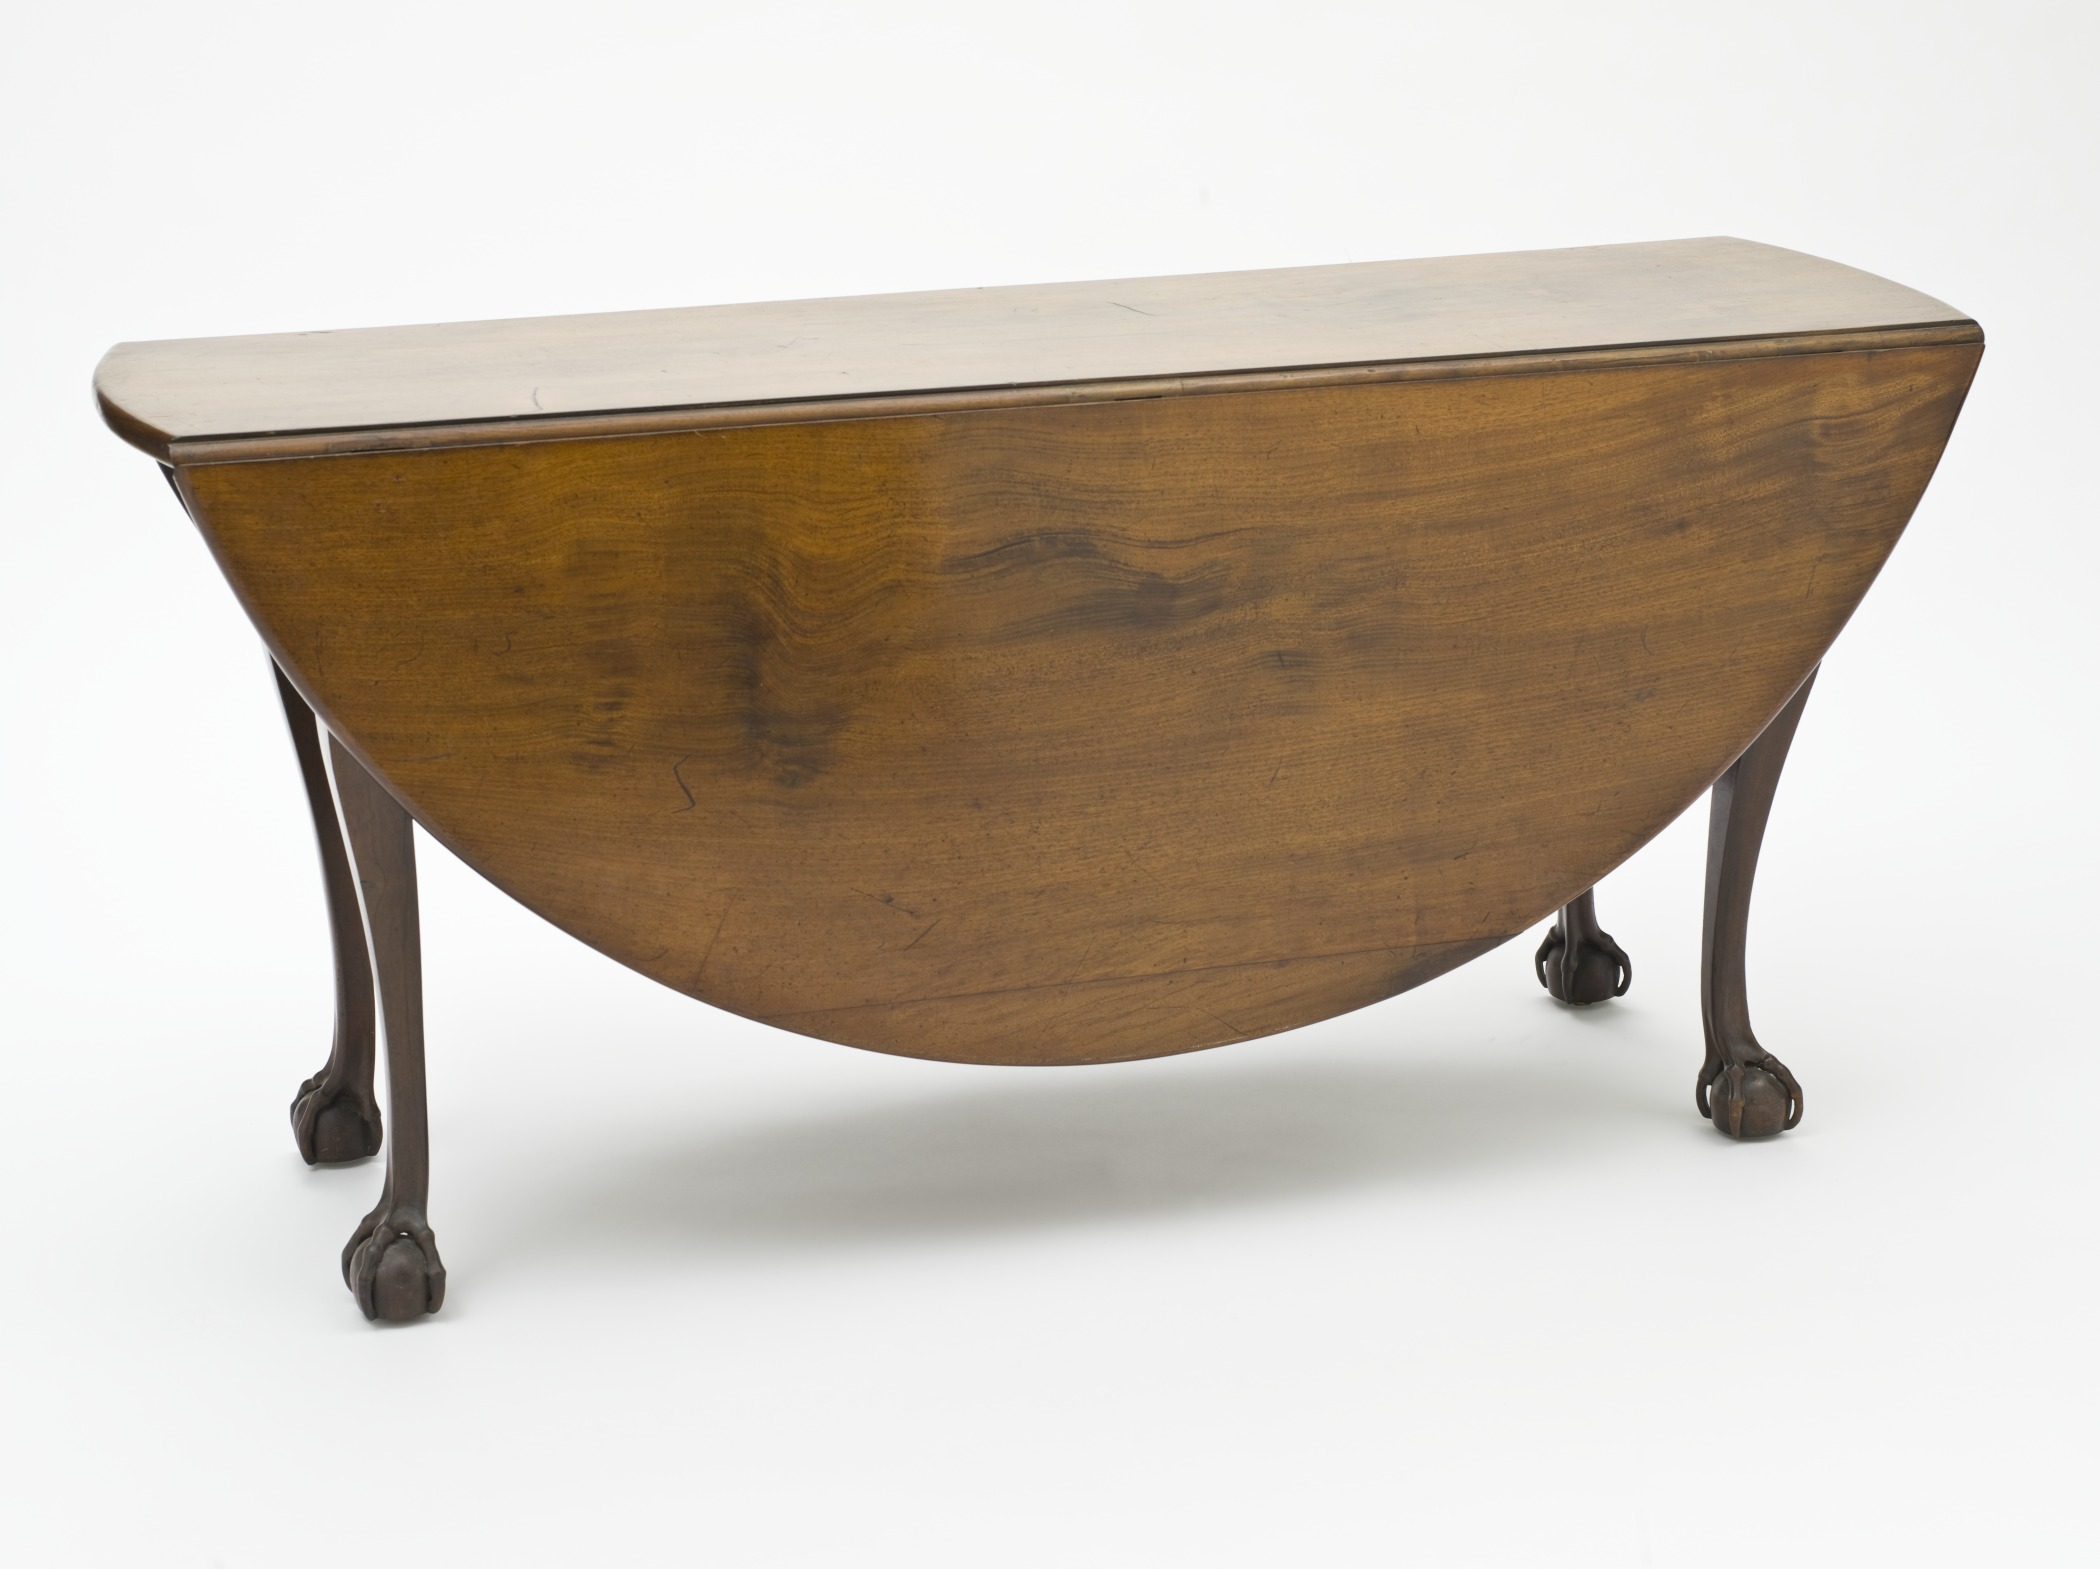 Oval Drop Leaf Dining Table with Ball and Claw Feet LACMA M.2006.51.9